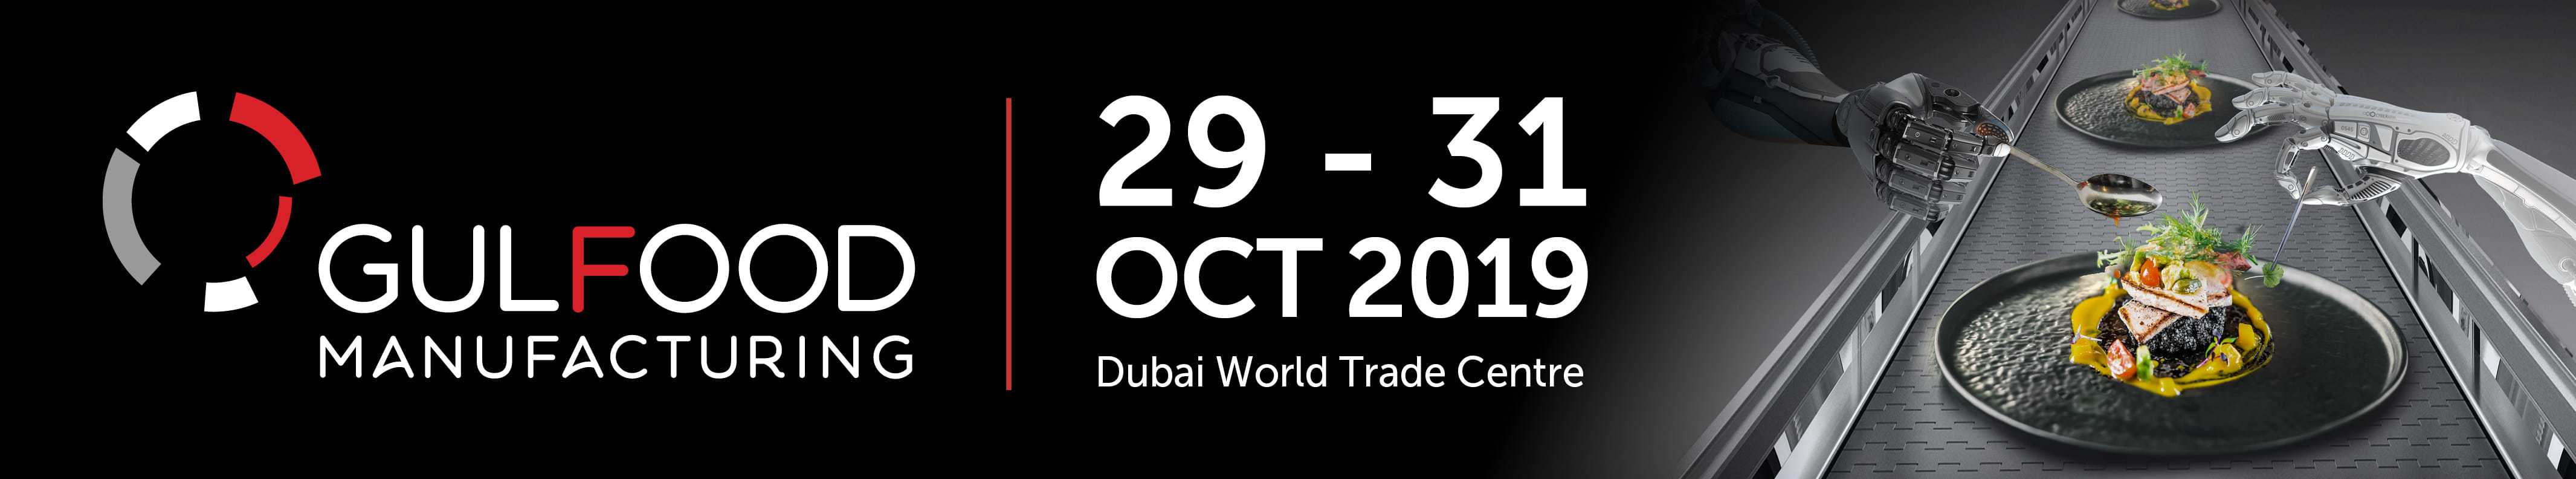 Gulfood Manufacturing, exhibition, Dubai, Al Thika Packaging, Gulfood 2019, Gulfood Manufacturing 2019